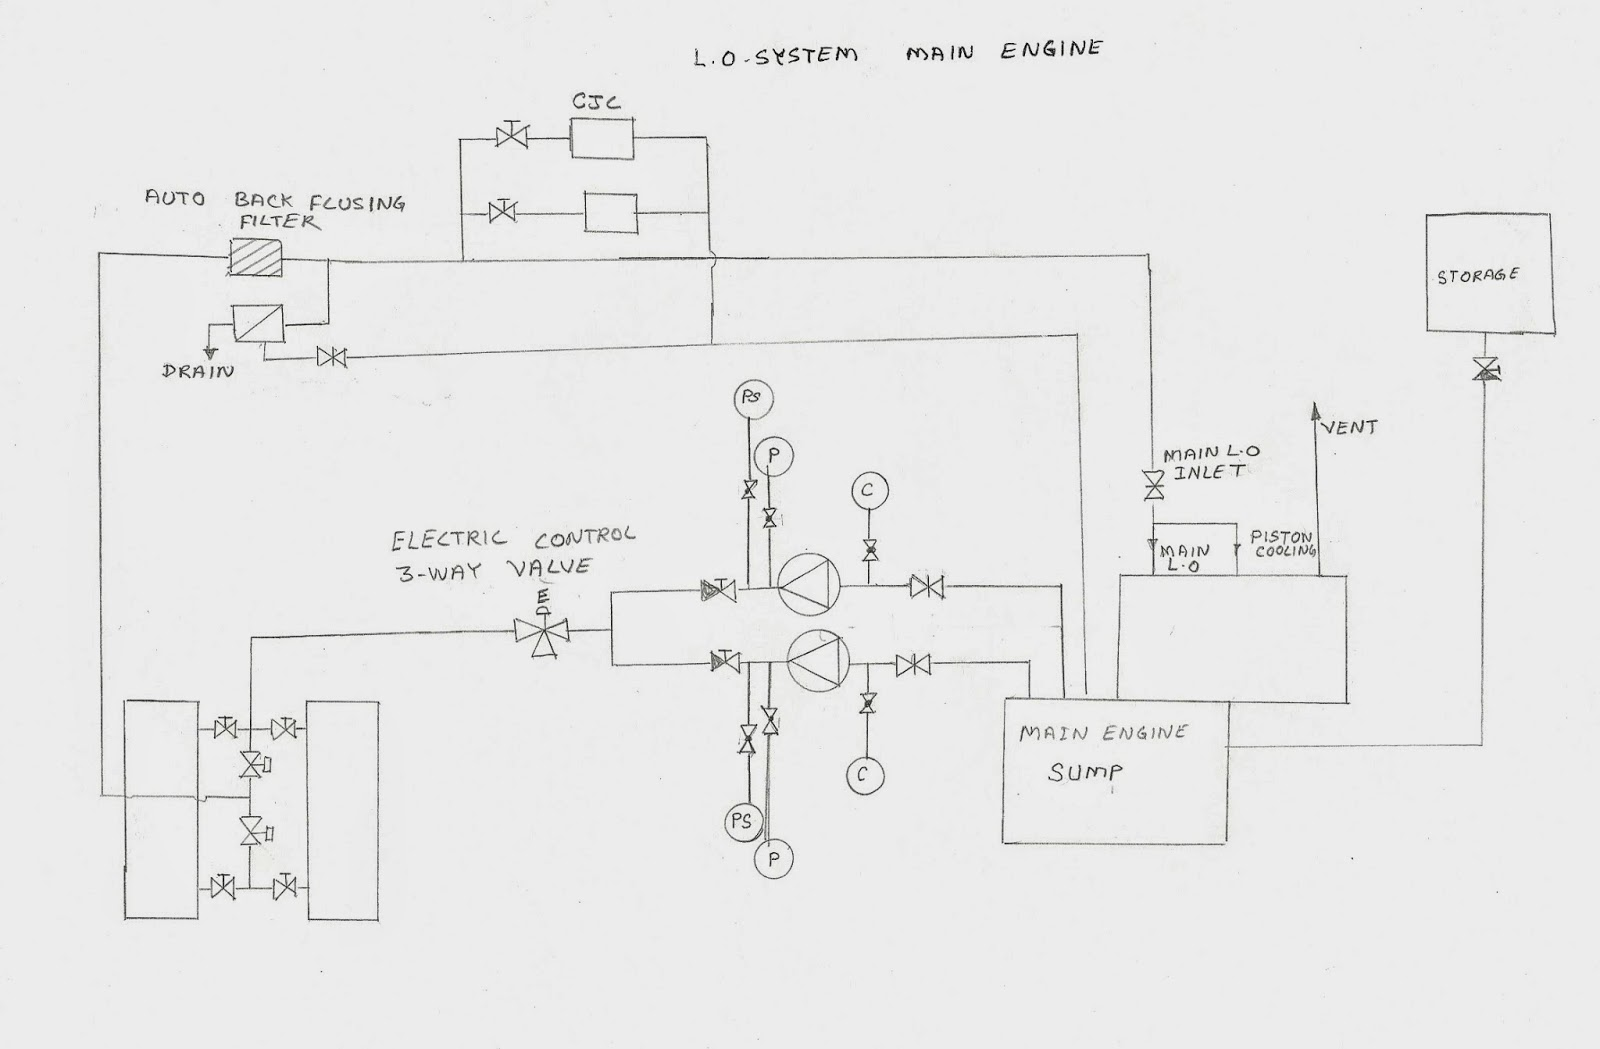 small resolution of piping diagram in engine room wiring diagram view piping diagram in engine room